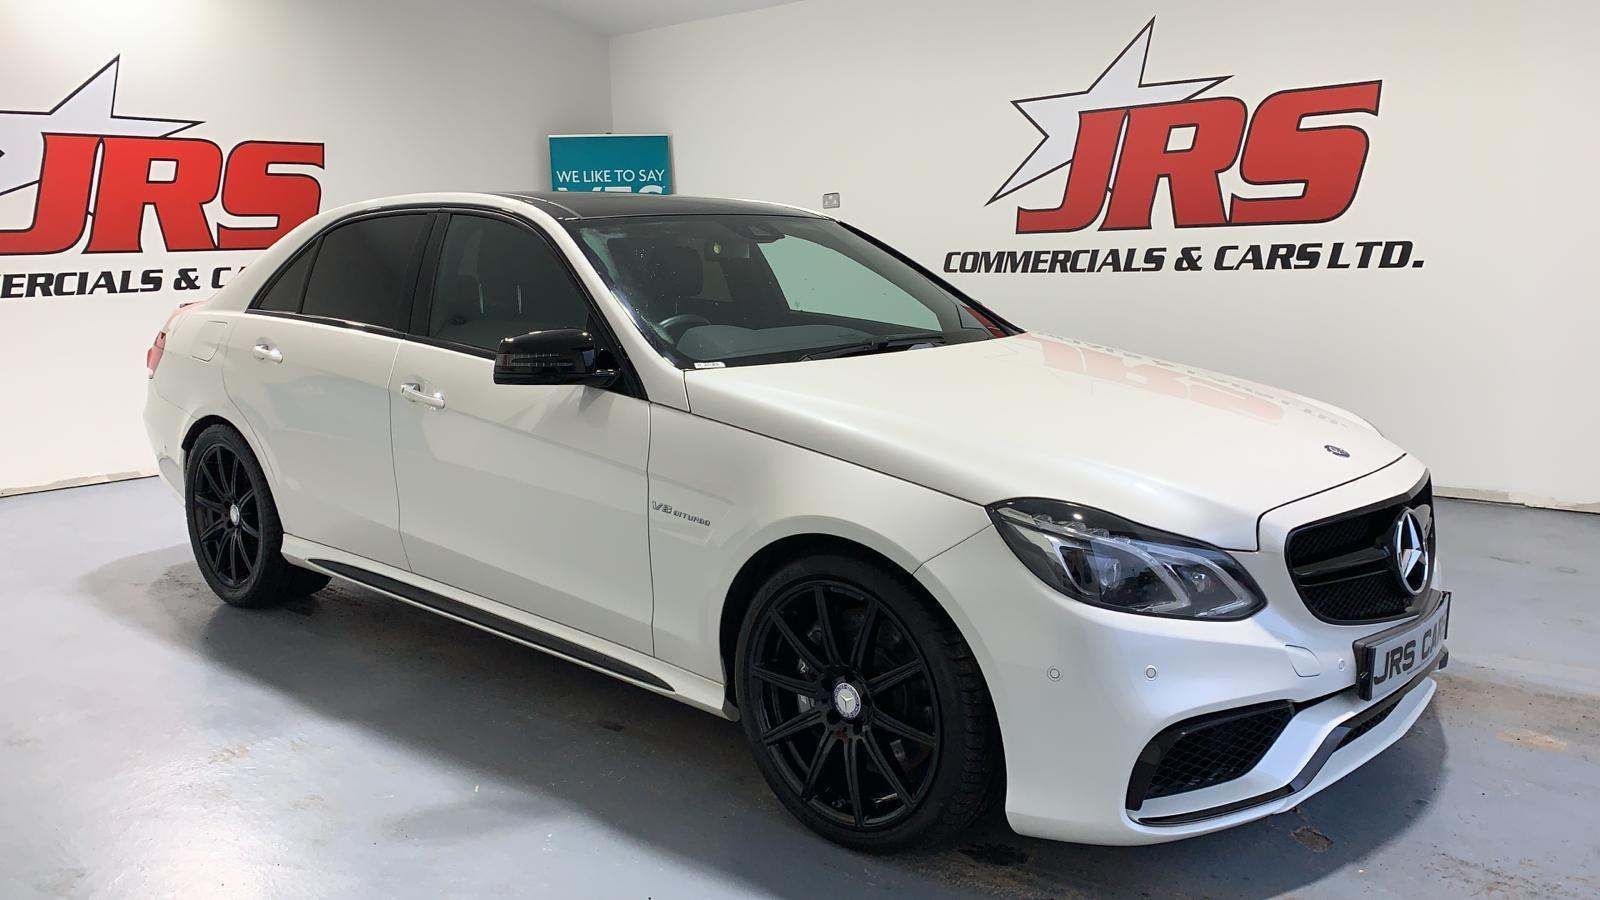 2015 MERCEDES BENZ E Class 5.5 E63 AMG MCT Petrol Automatic **PAN ROOF FULL SERVICE HIST** – J R S Commercials And Cars Dungannon